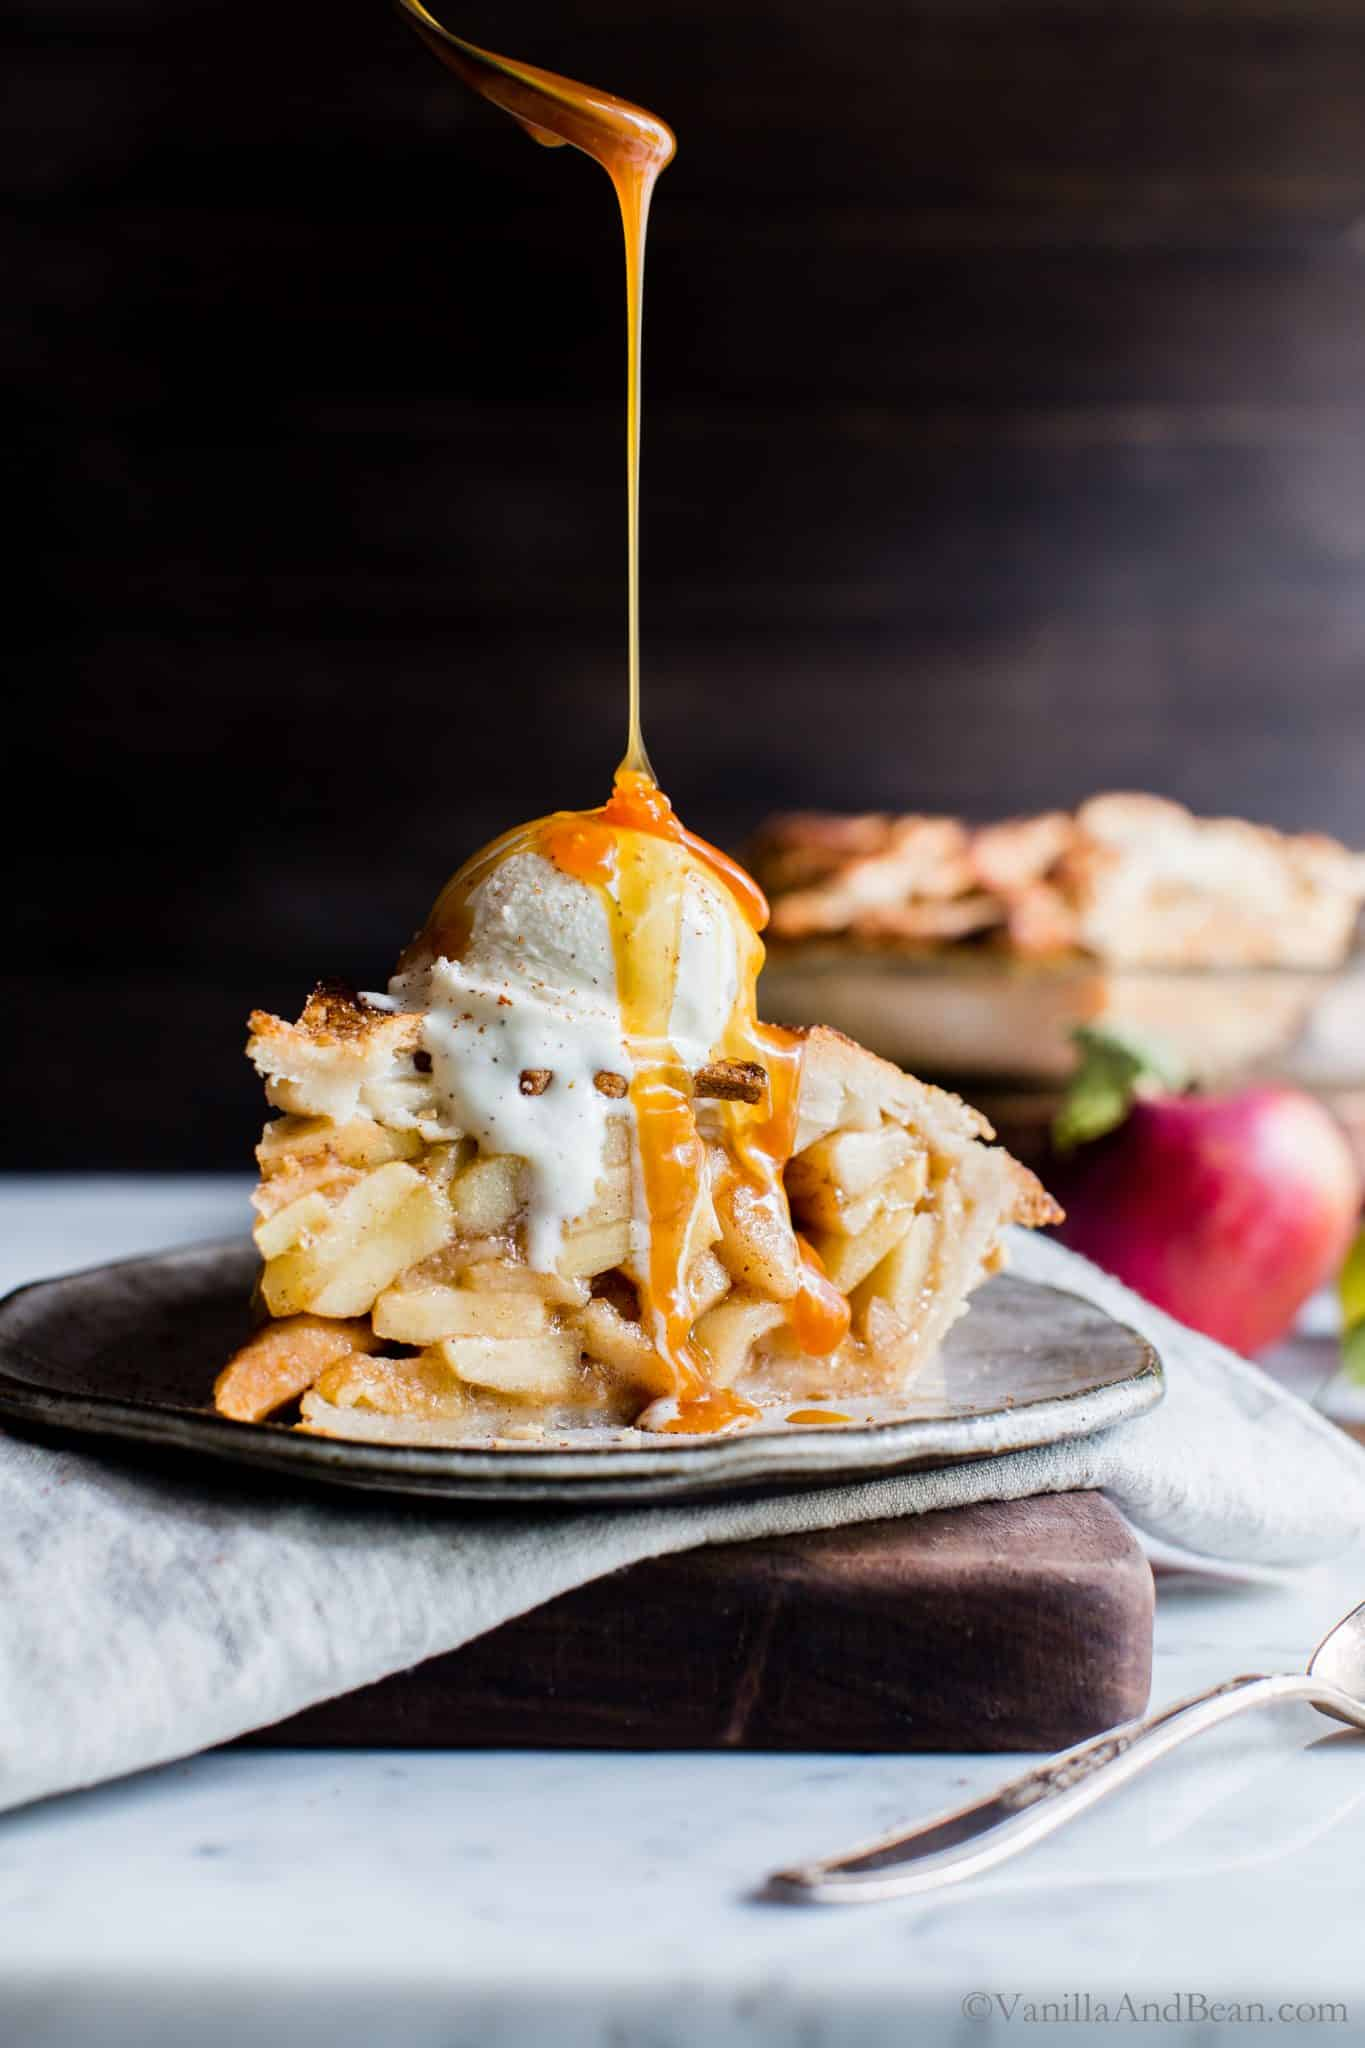 Apple Pie with ice cream on top and a drizzle of caramel sauce on a plate.